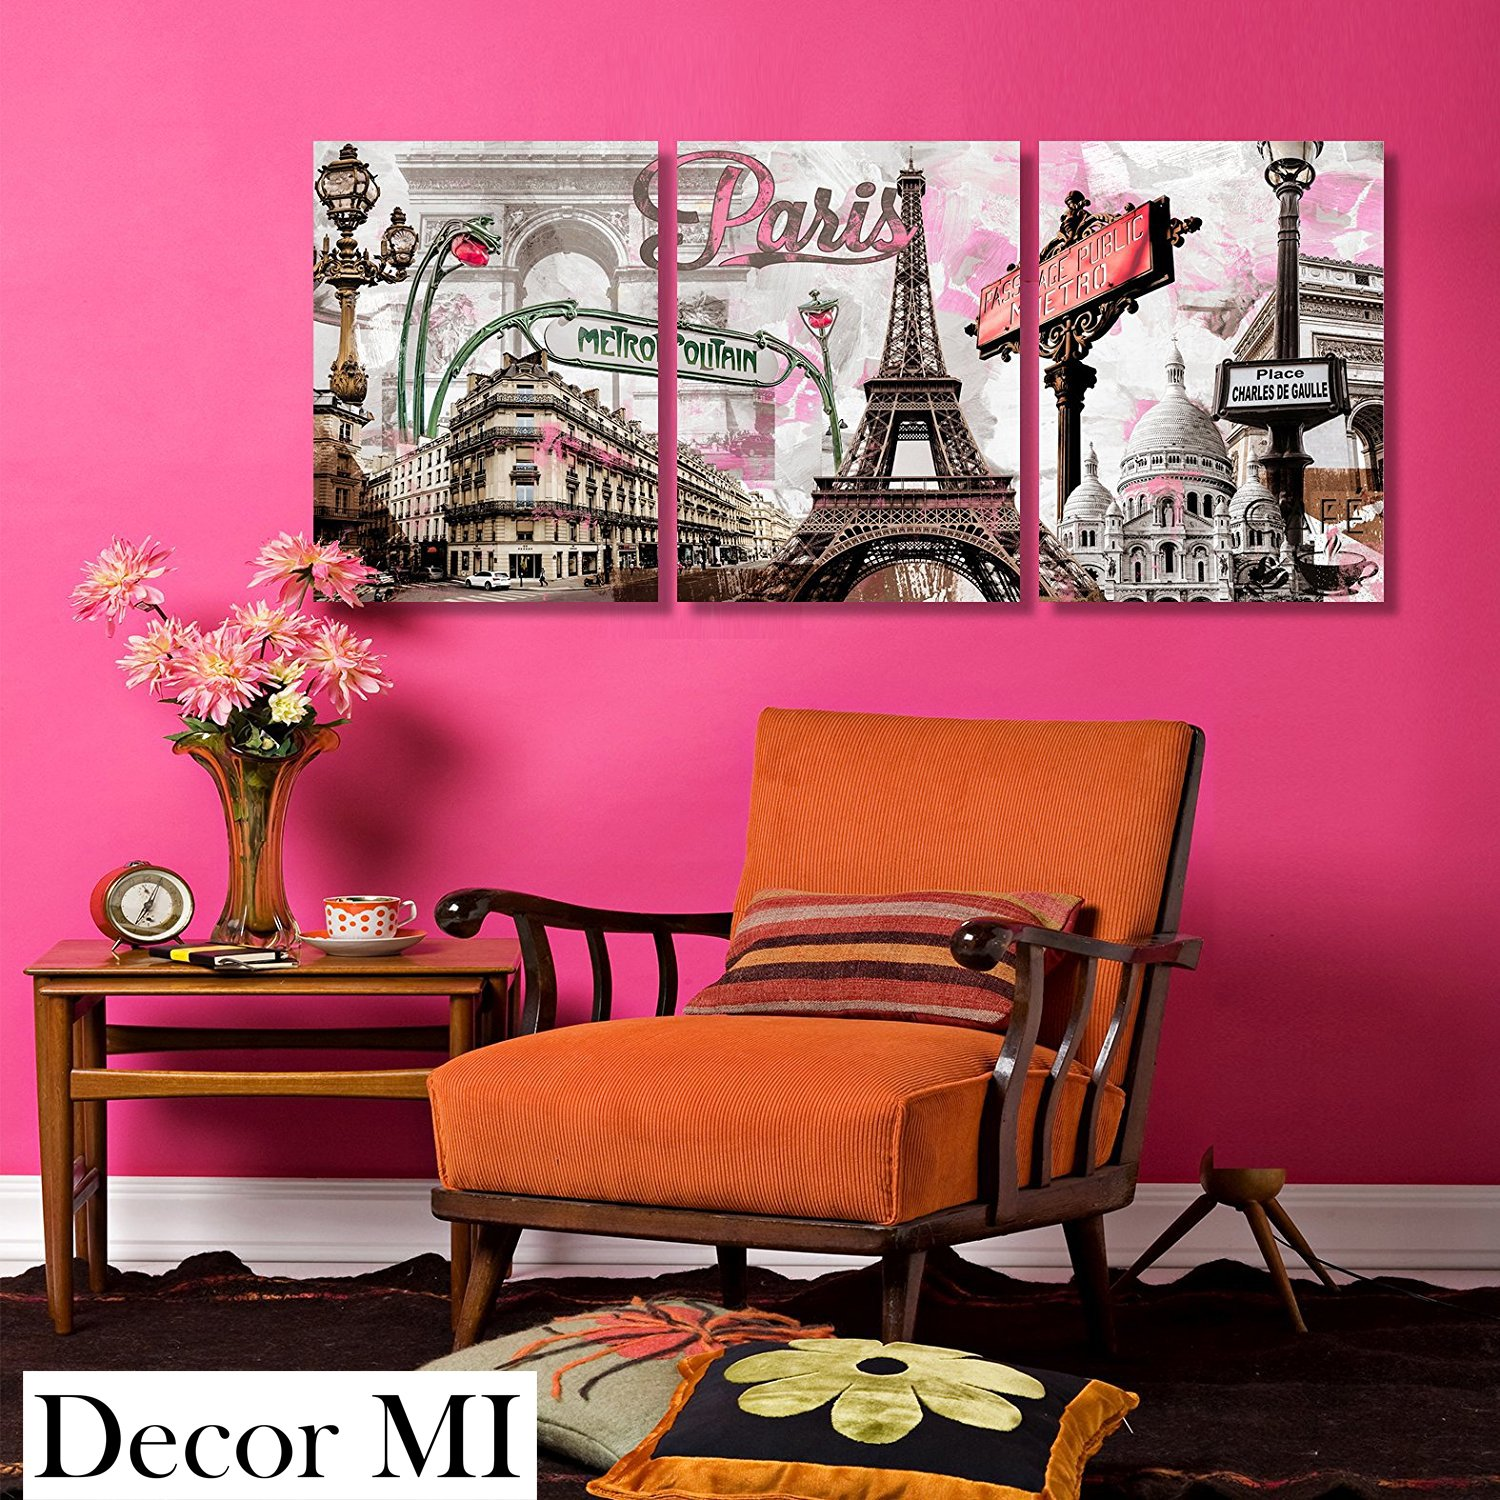 35e66f1eded Decor MI Modern Wall Art Pink Paris Eiffel Towel Decor Romantic City  Paintings Poster Prints On Canvas Framed For Living Room 12x16 inch 3 Panels